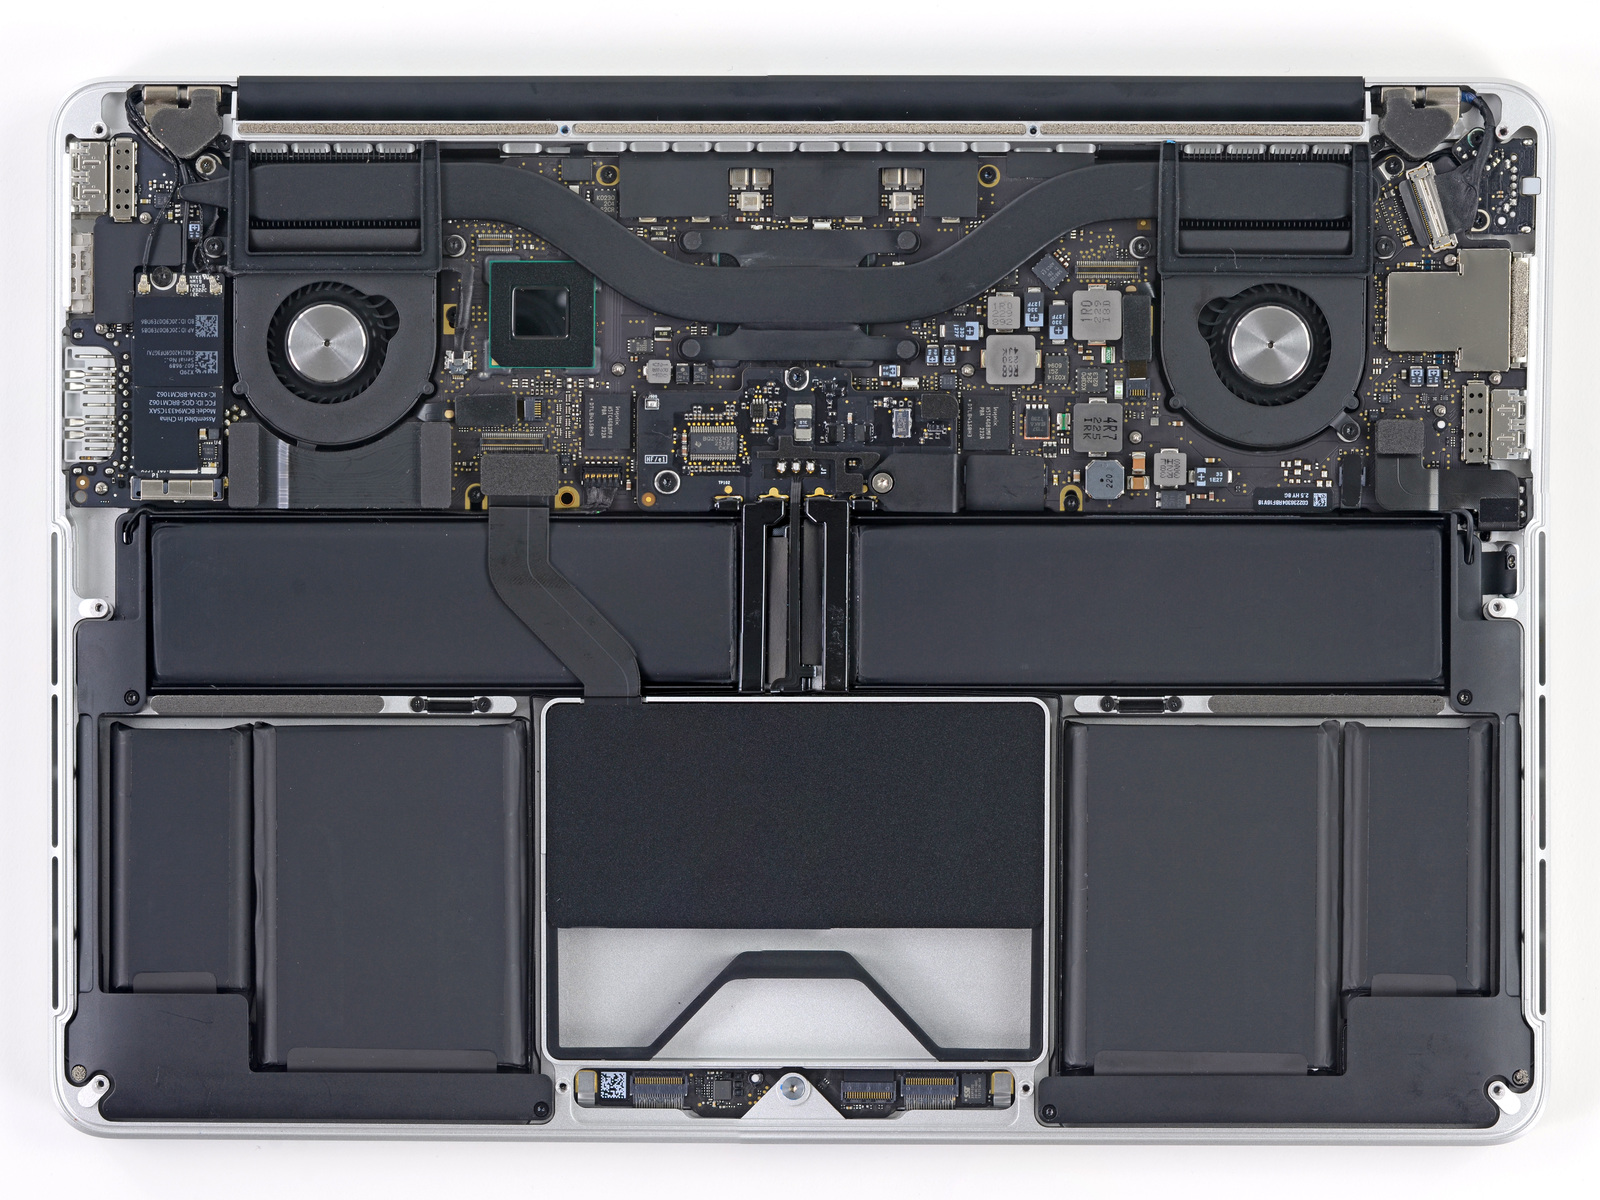 "The inside of the 13"" Retina MacBook Pro. Note the two fans connected to the processor by heat pipes, and the SSD module tucked in underneath the trackpad."